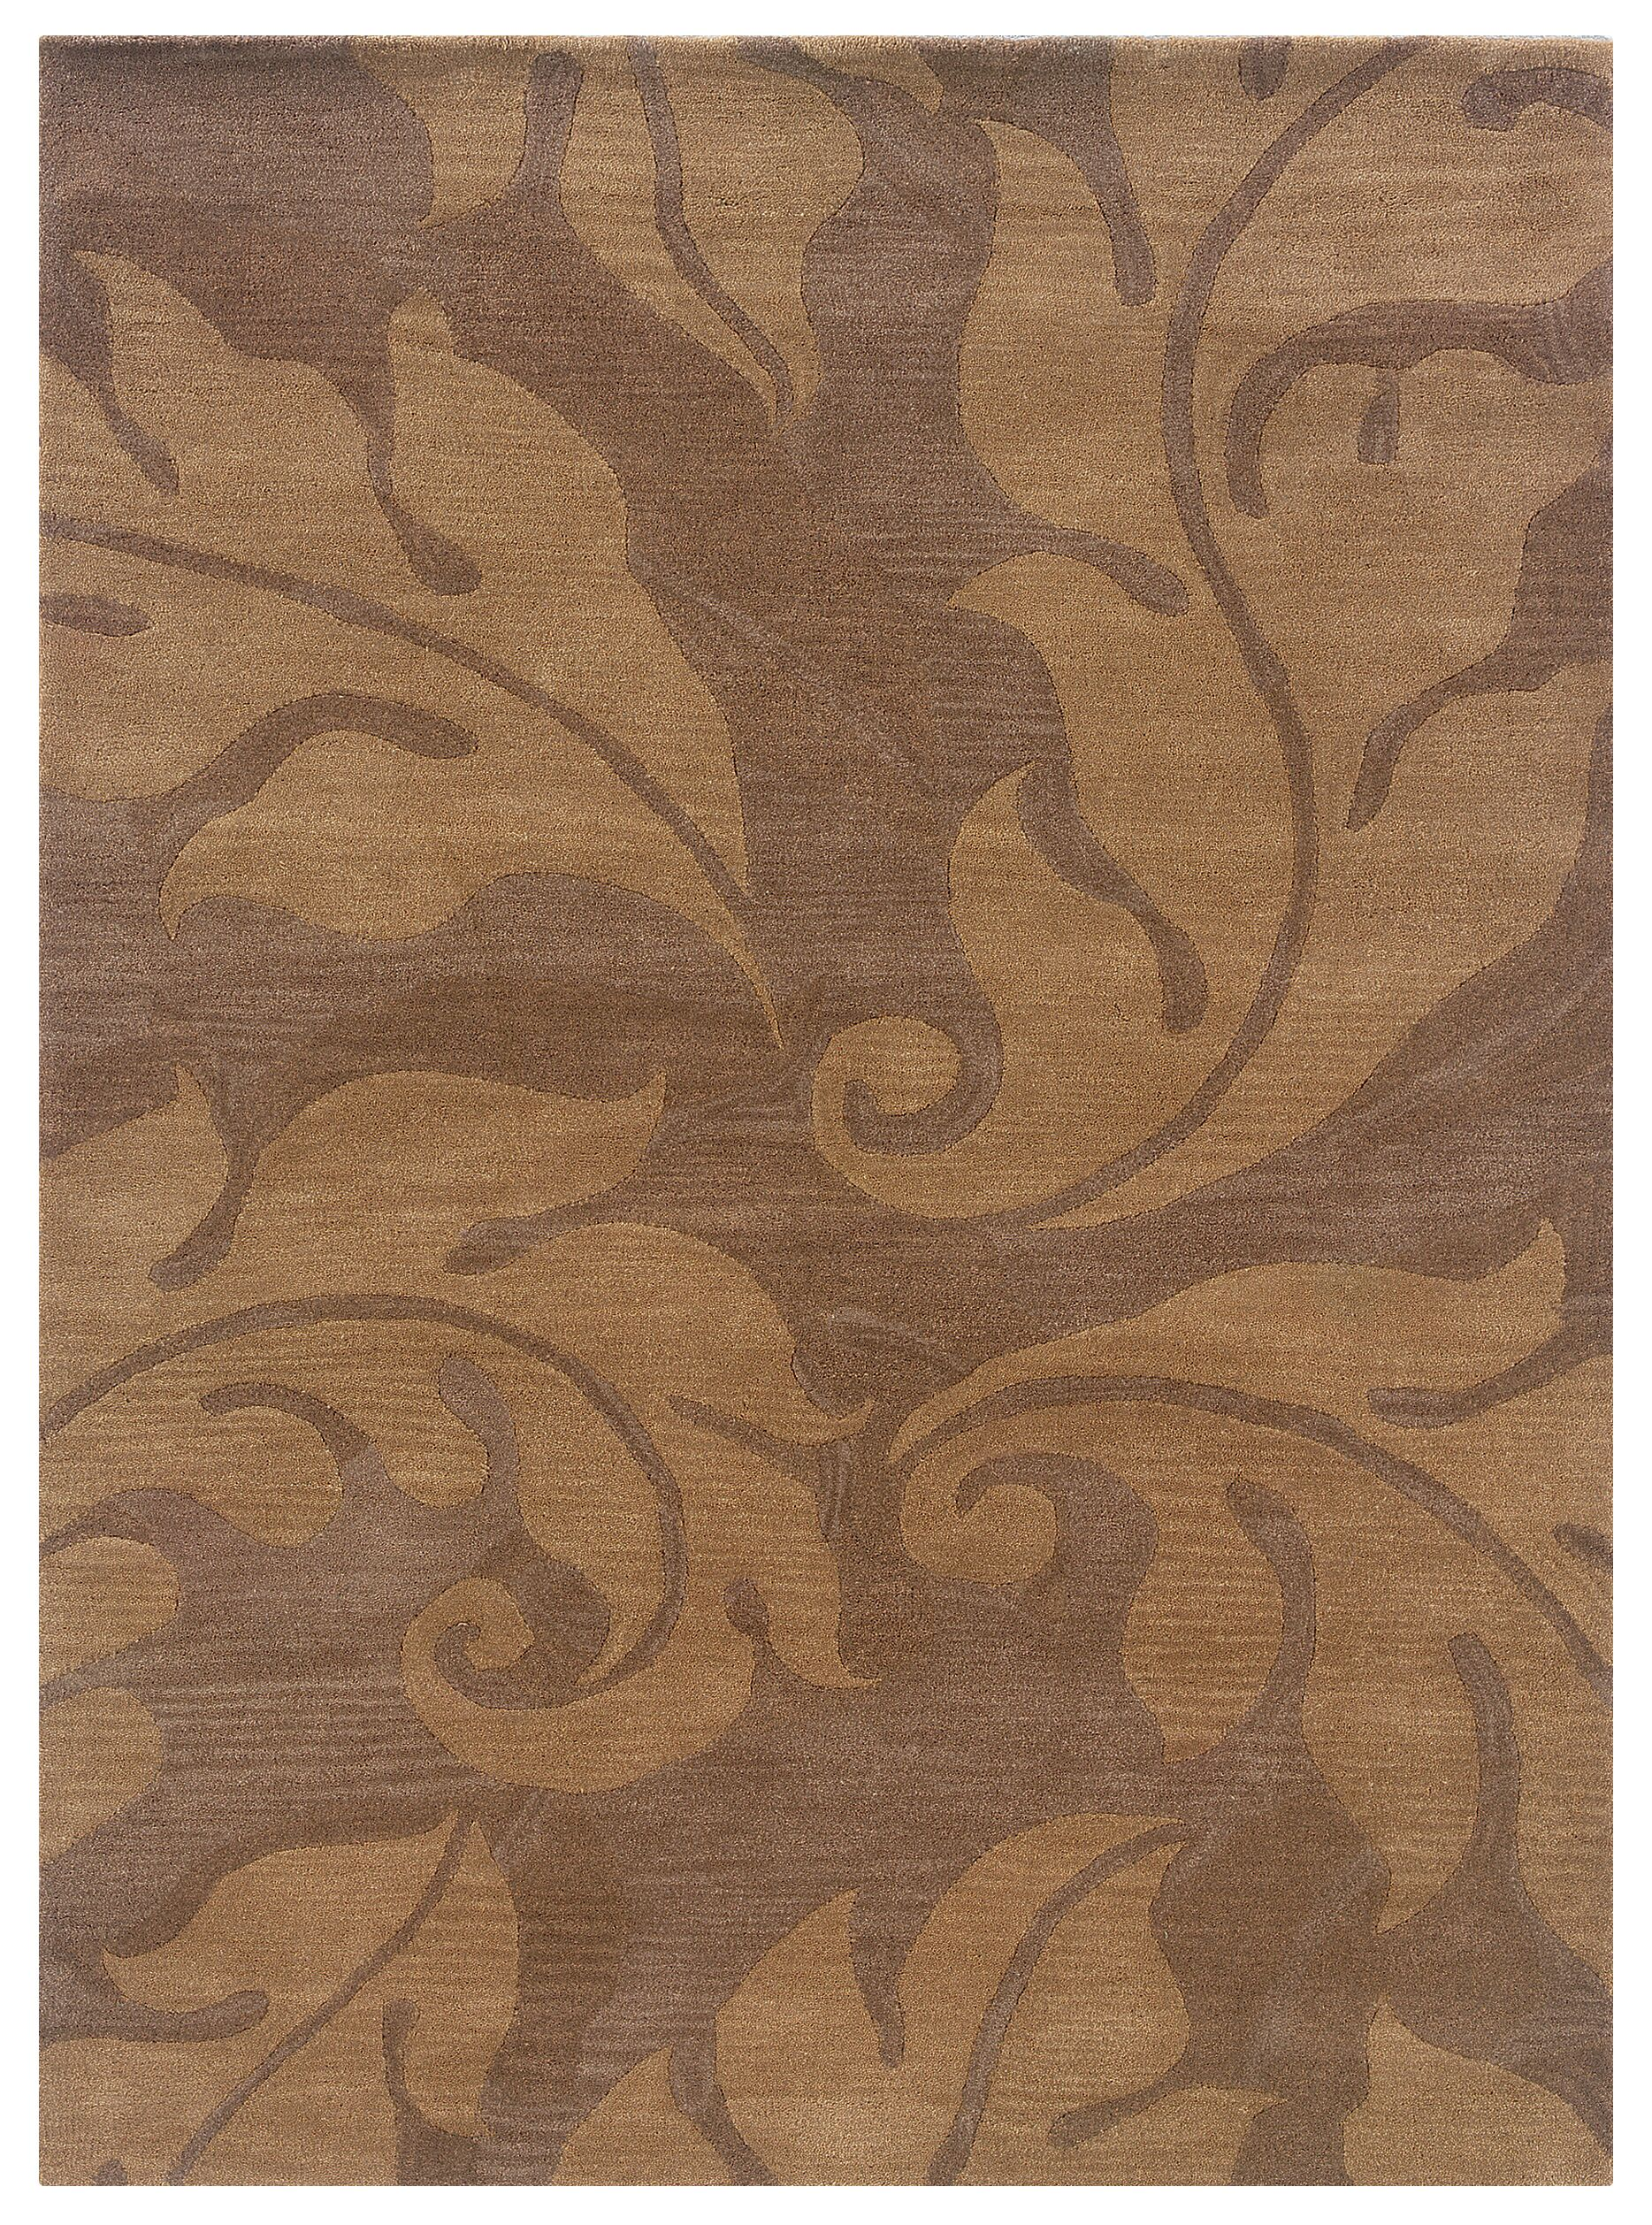 Hand-Tufted Beige/Gold Area Rug Rug Size: Rectangle 5' x 7'